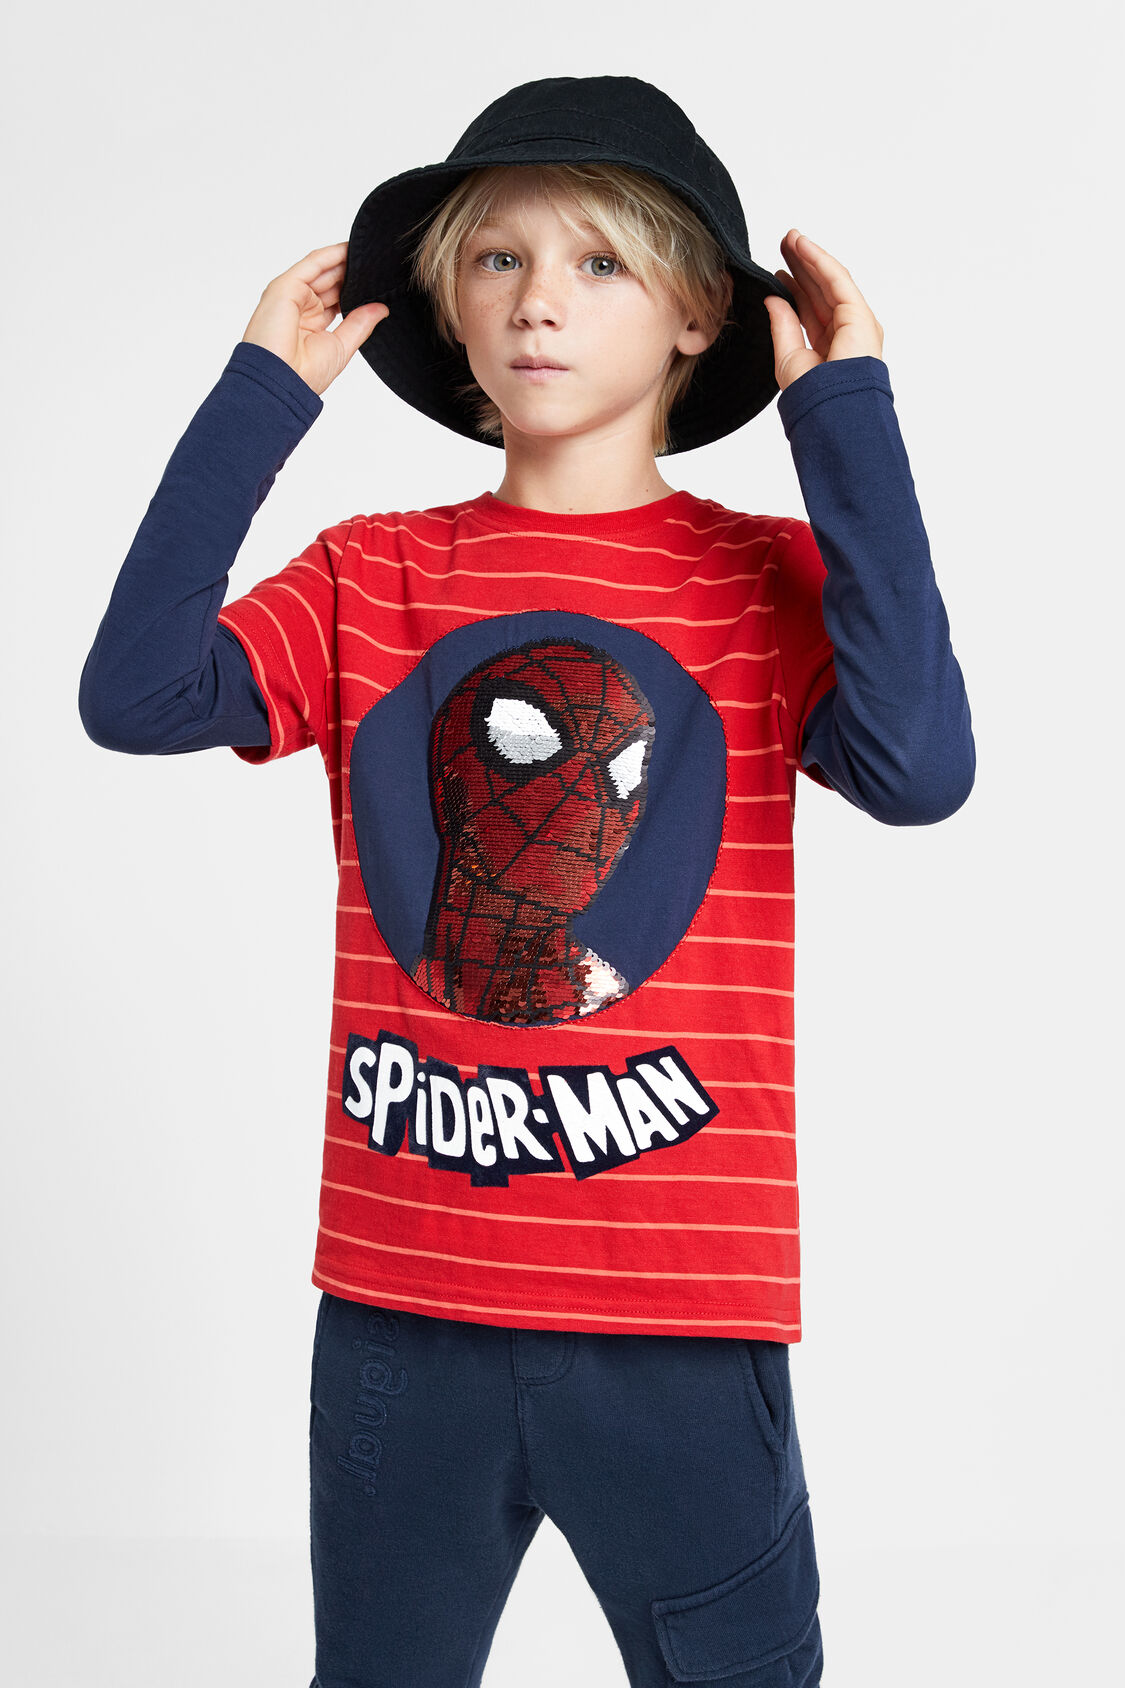 Tee Shirt Spiderman Paillettes réversibles Desigual